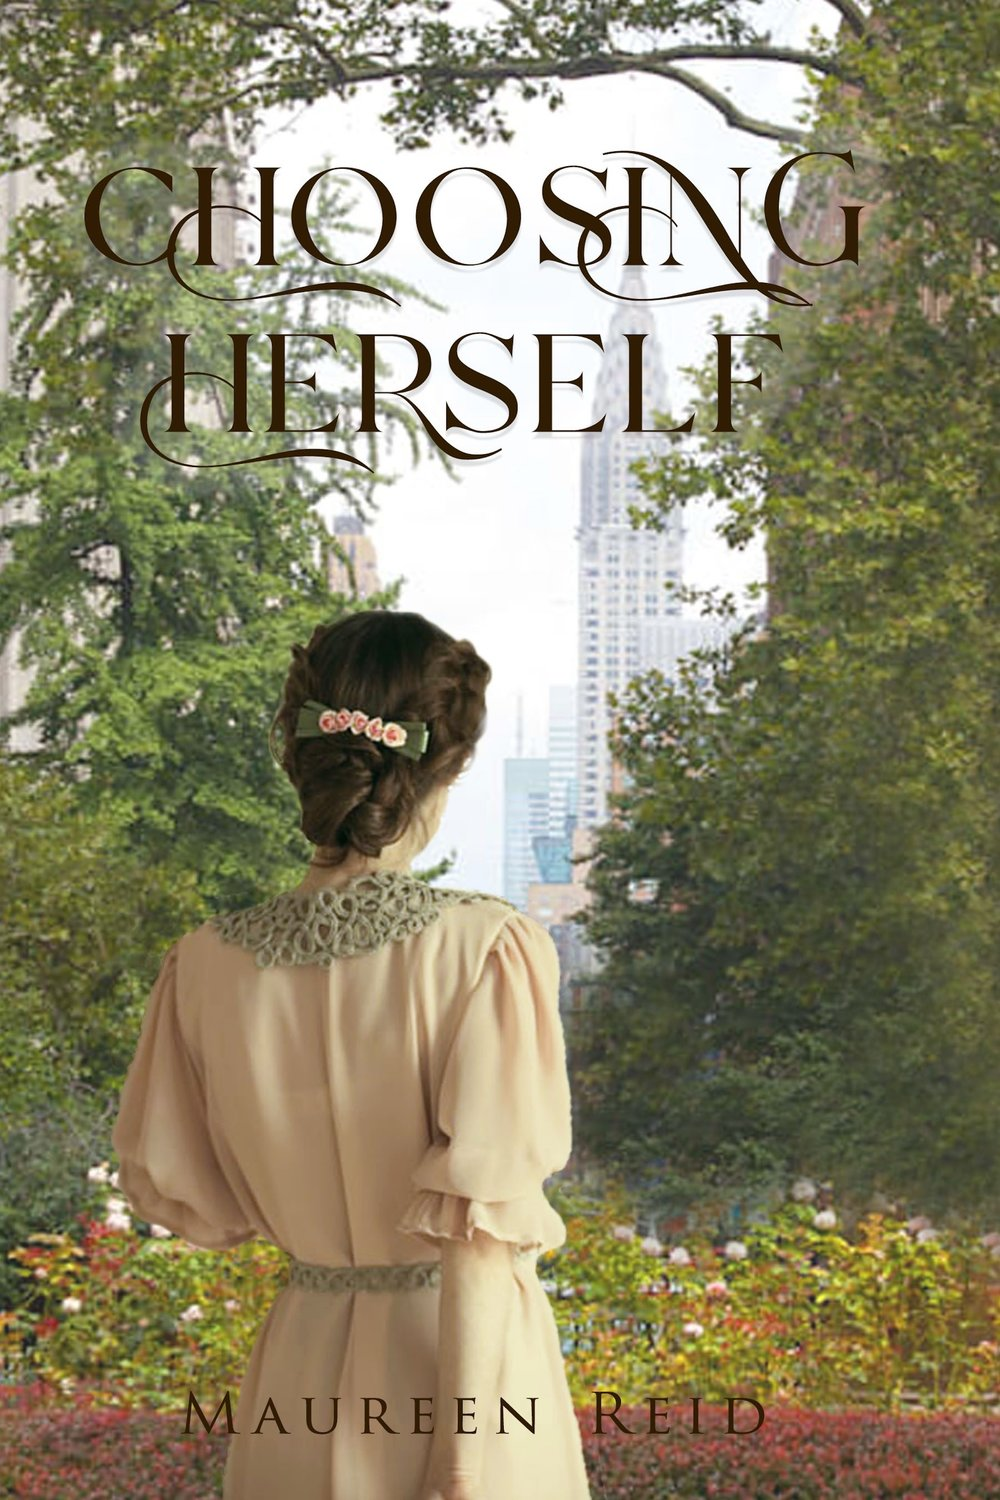 The novel focuses on Nell, a woman living in New York City who witnesses the infamous Triangle Shirtwaist Factory fire that killed 142 people on March 25, 1911.